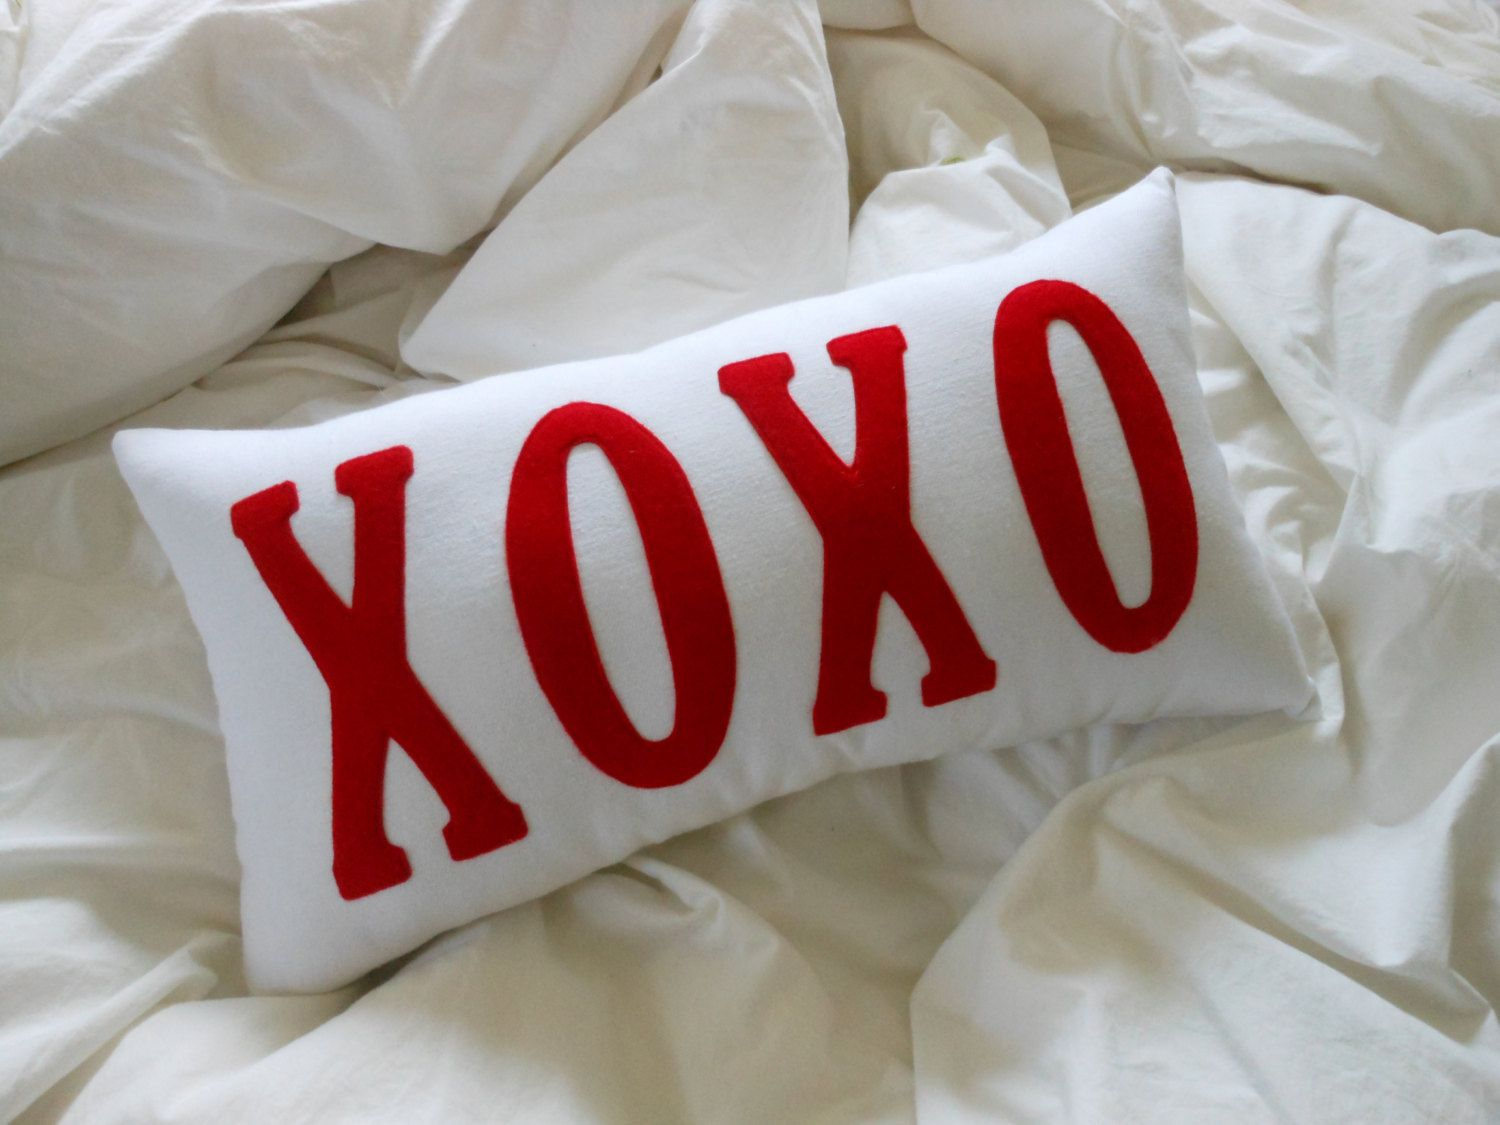 Xoxo valentine pillow red and white letter pillow sewing for